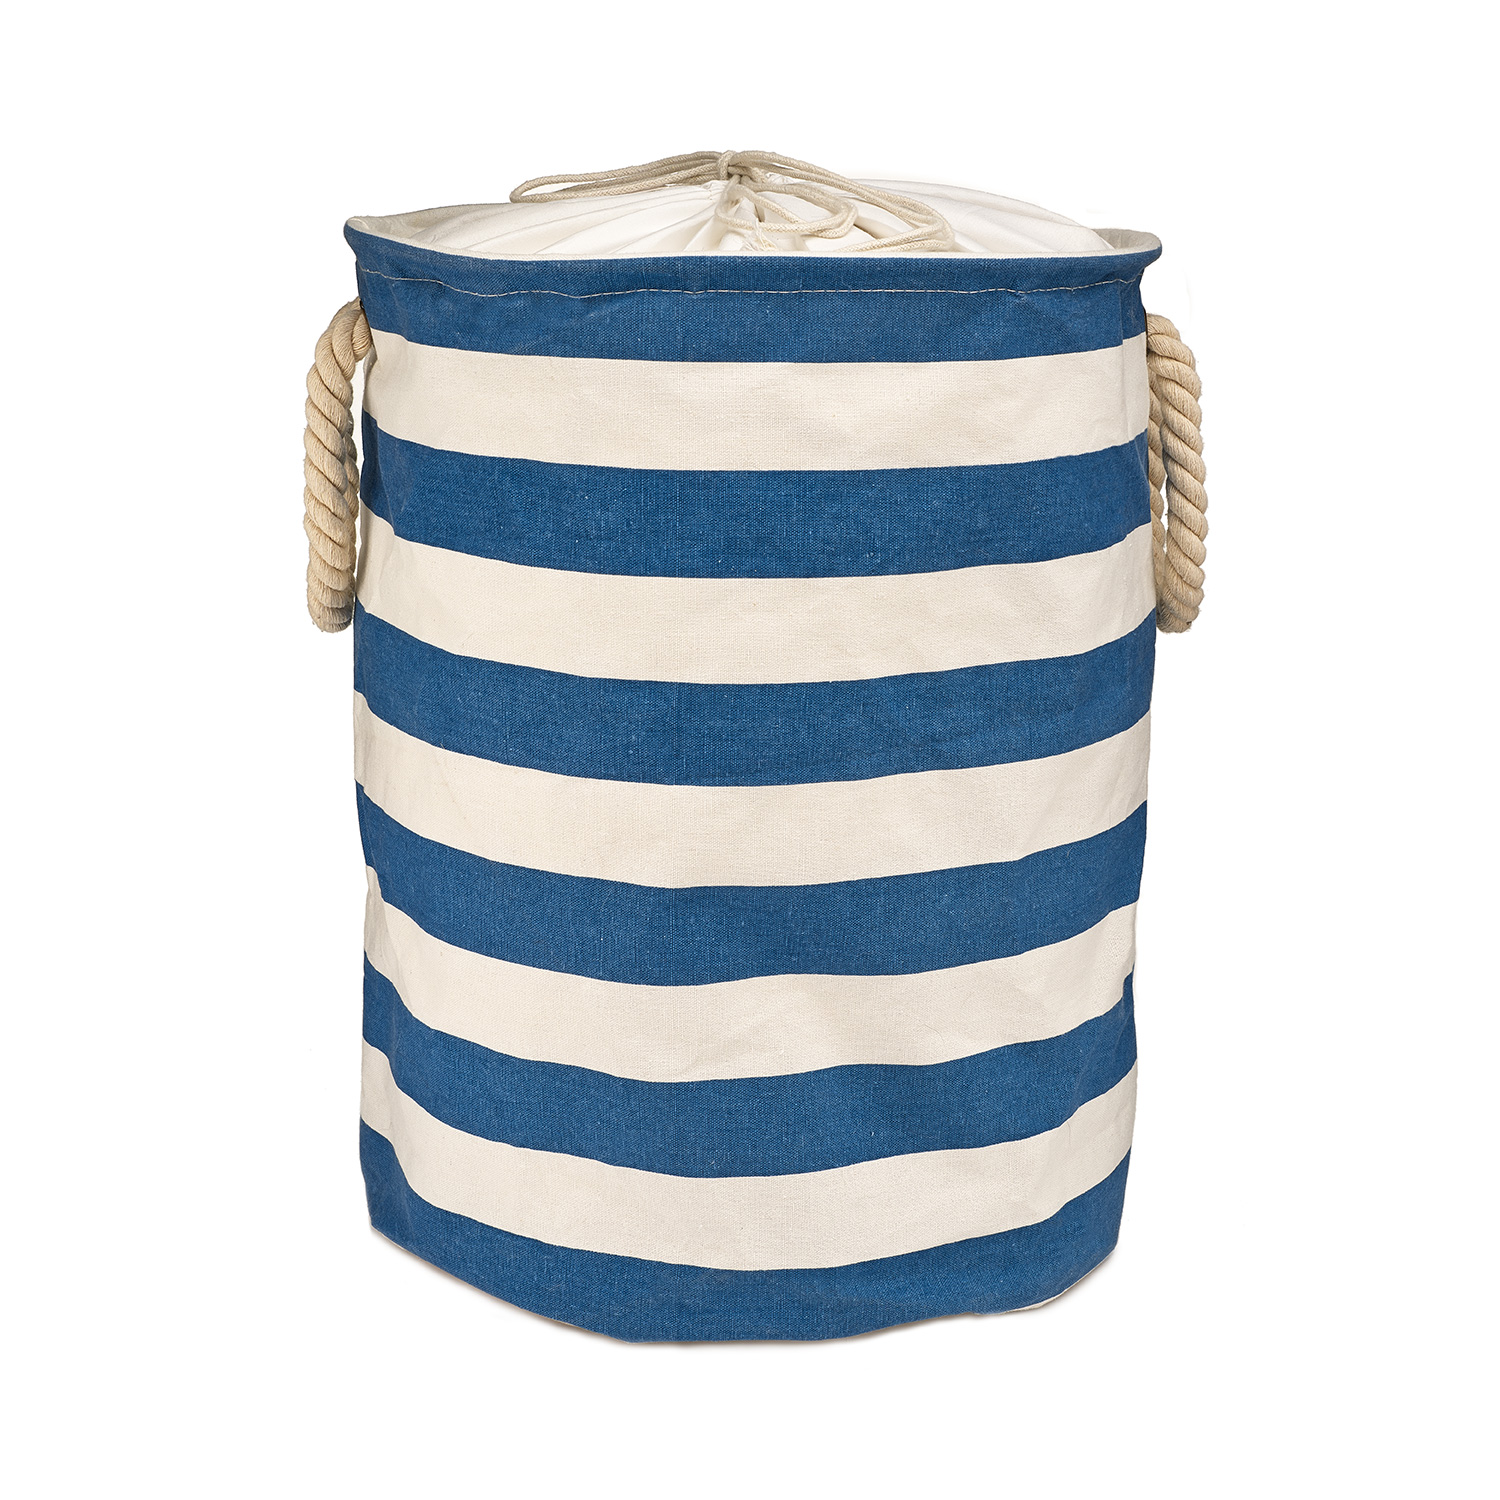 Blue Striped Cotton Fabric Collapsible Kids Laundry Hamper